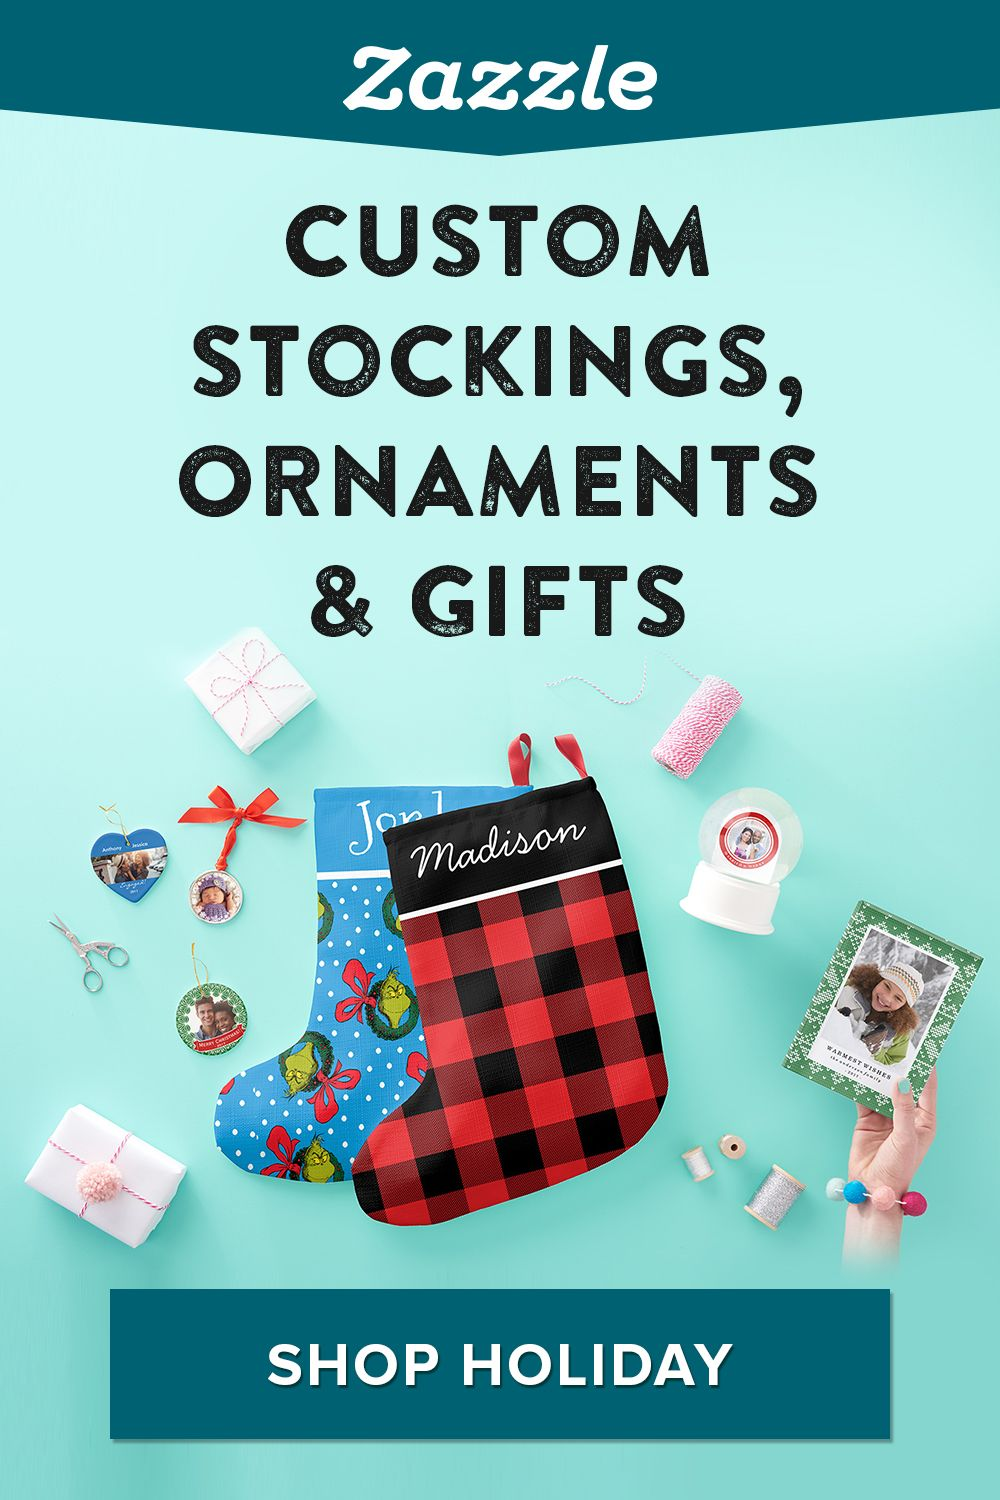 Find the perfect gift for everyone on your list. Browse ornaments, t-shirts, face masks, mugs and more. Choose from thousands of designs for kids, adults, and pets.